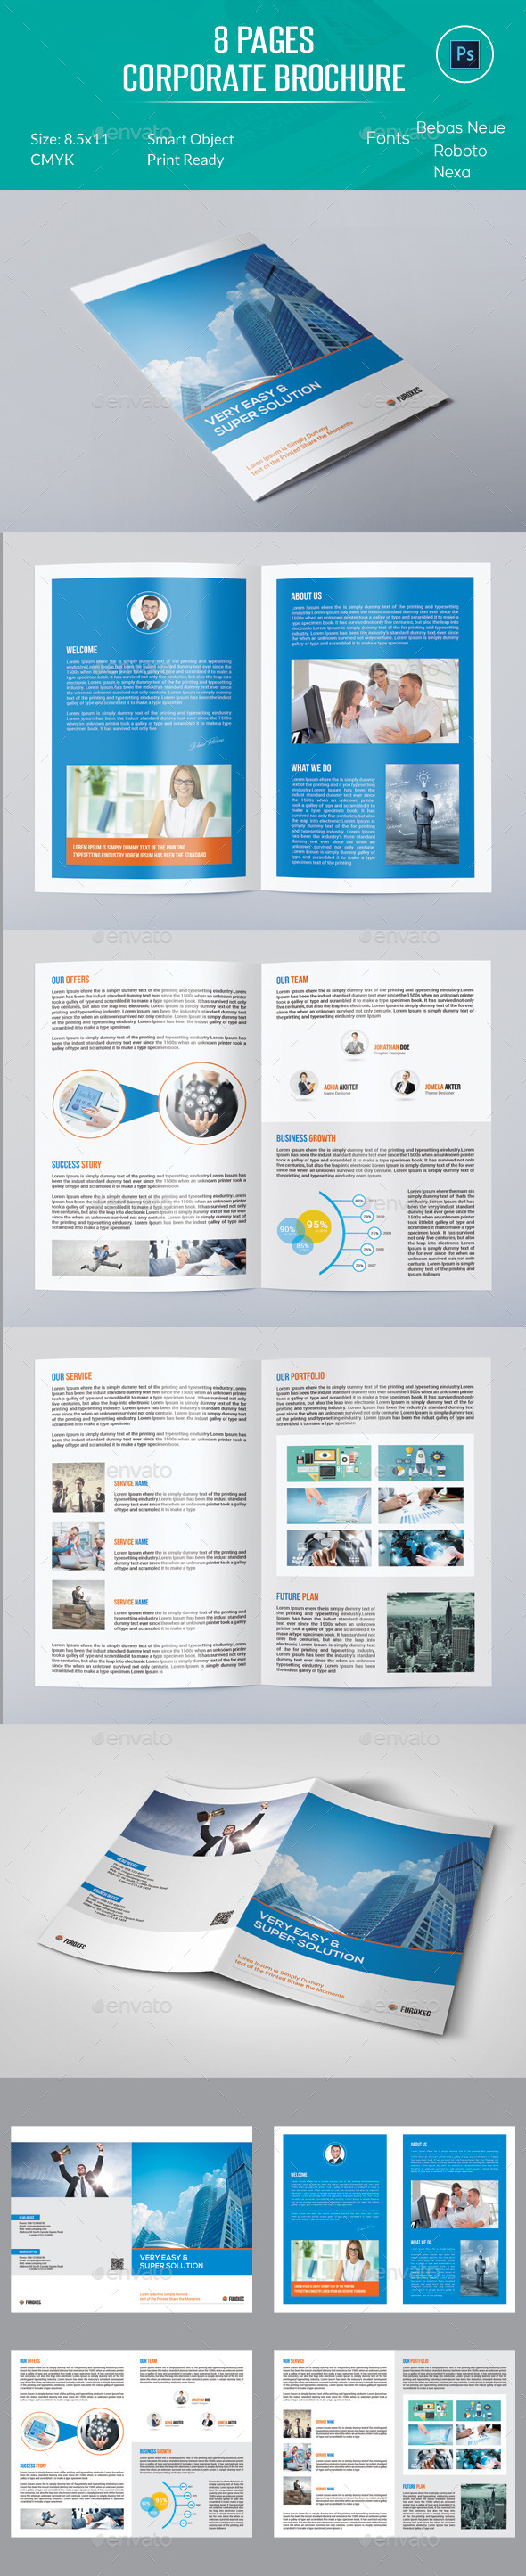 8 Pages Corporate Brochure